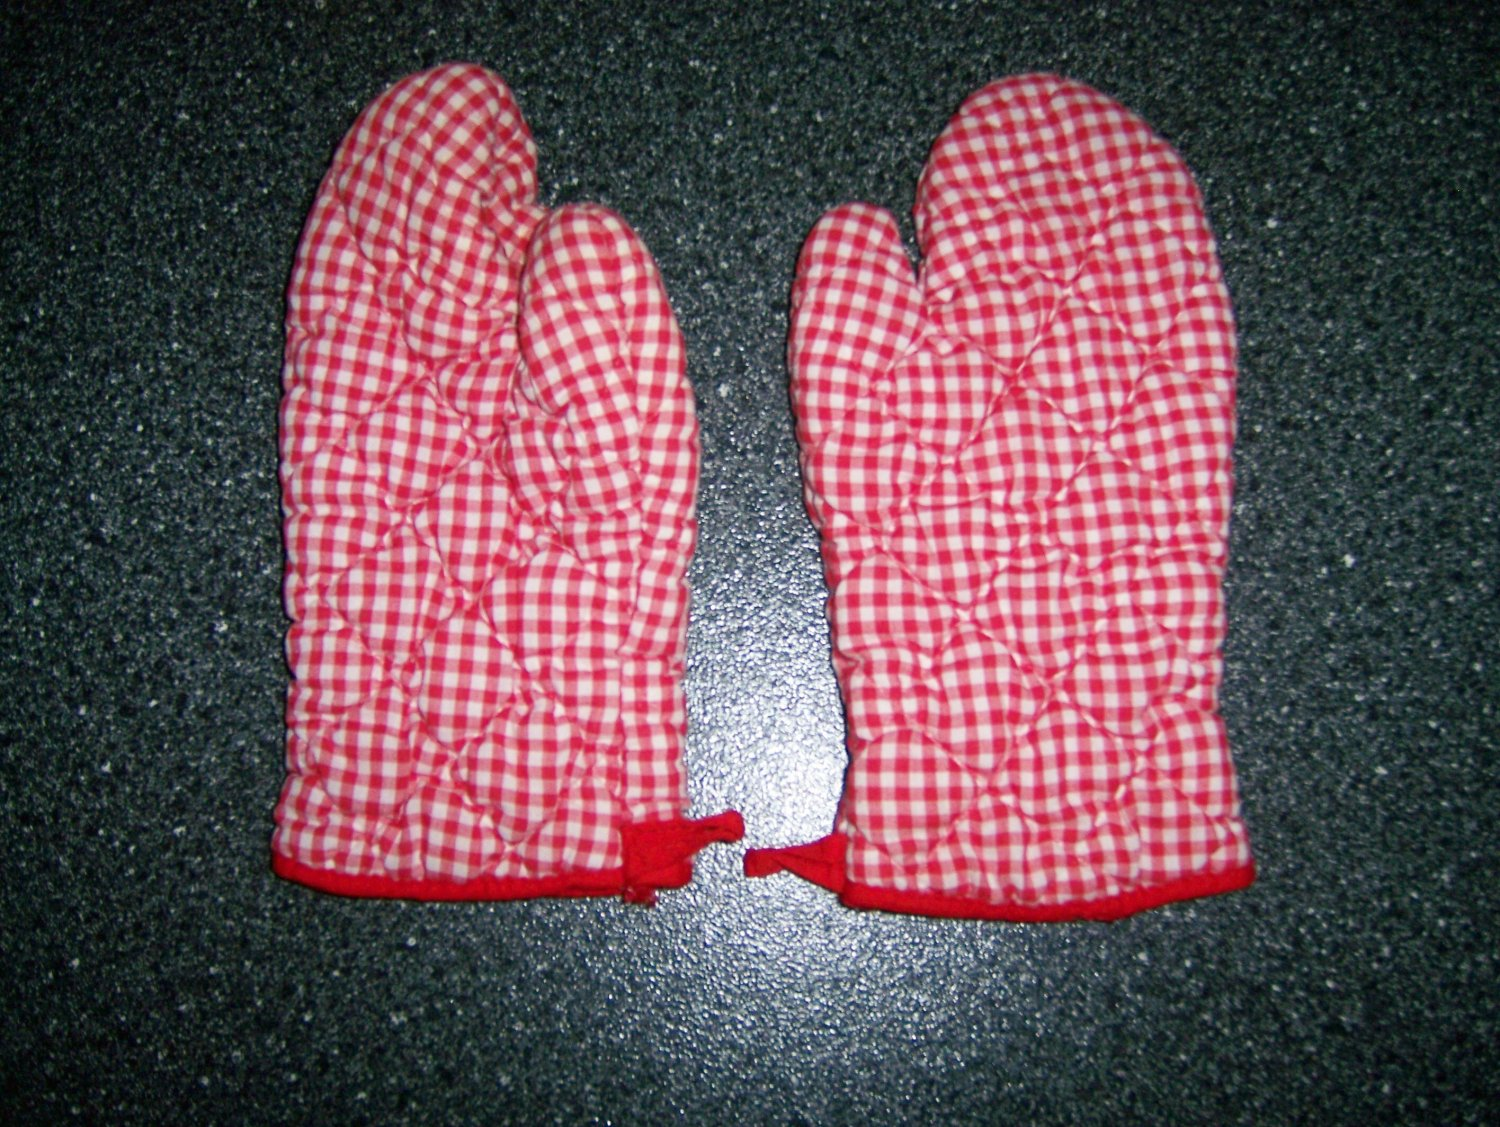 Pair Two Pot Holder Mitts Size 7-8 BNK201